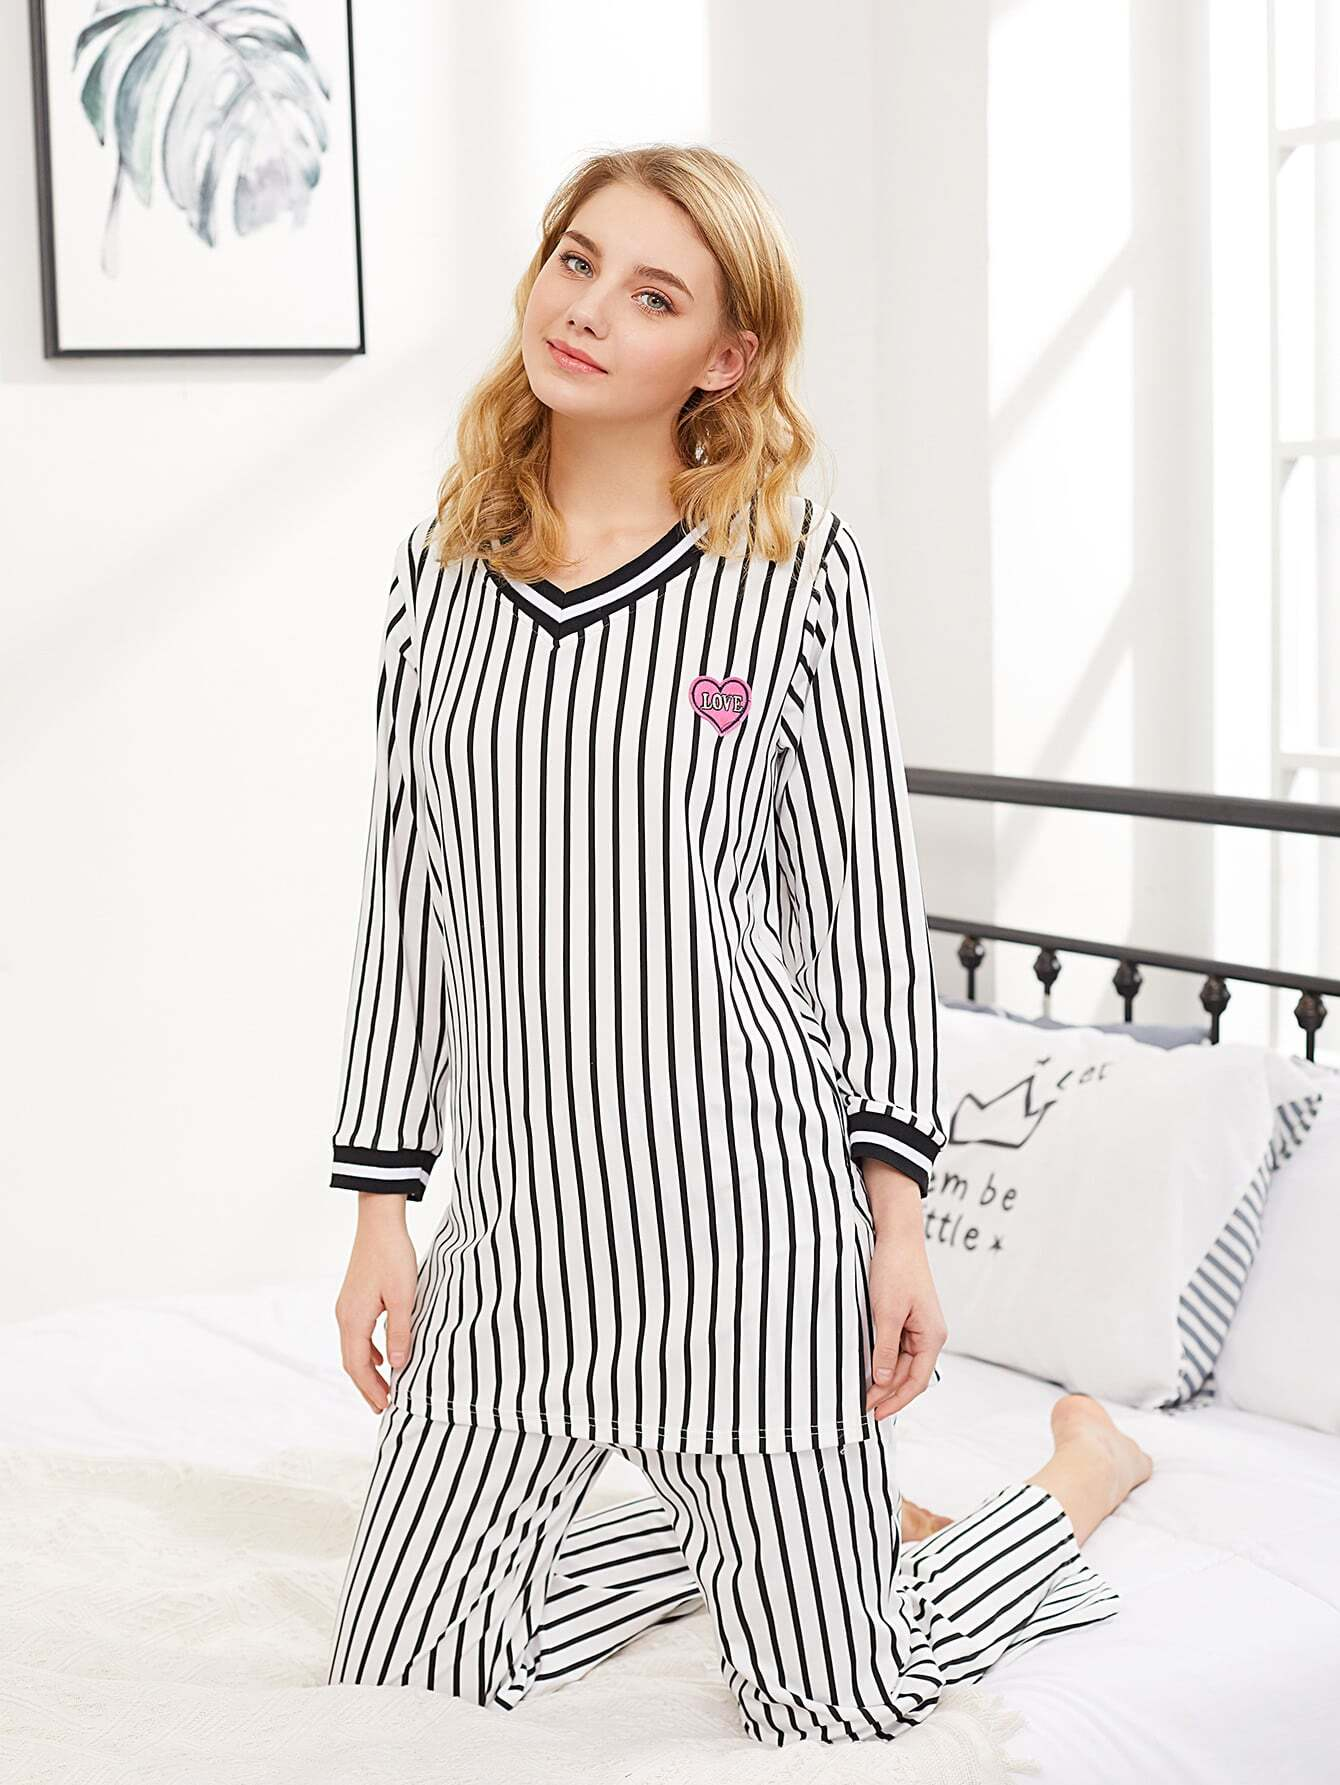 Vertical Striped Top & Pants PJ Set vertical striped bedding set